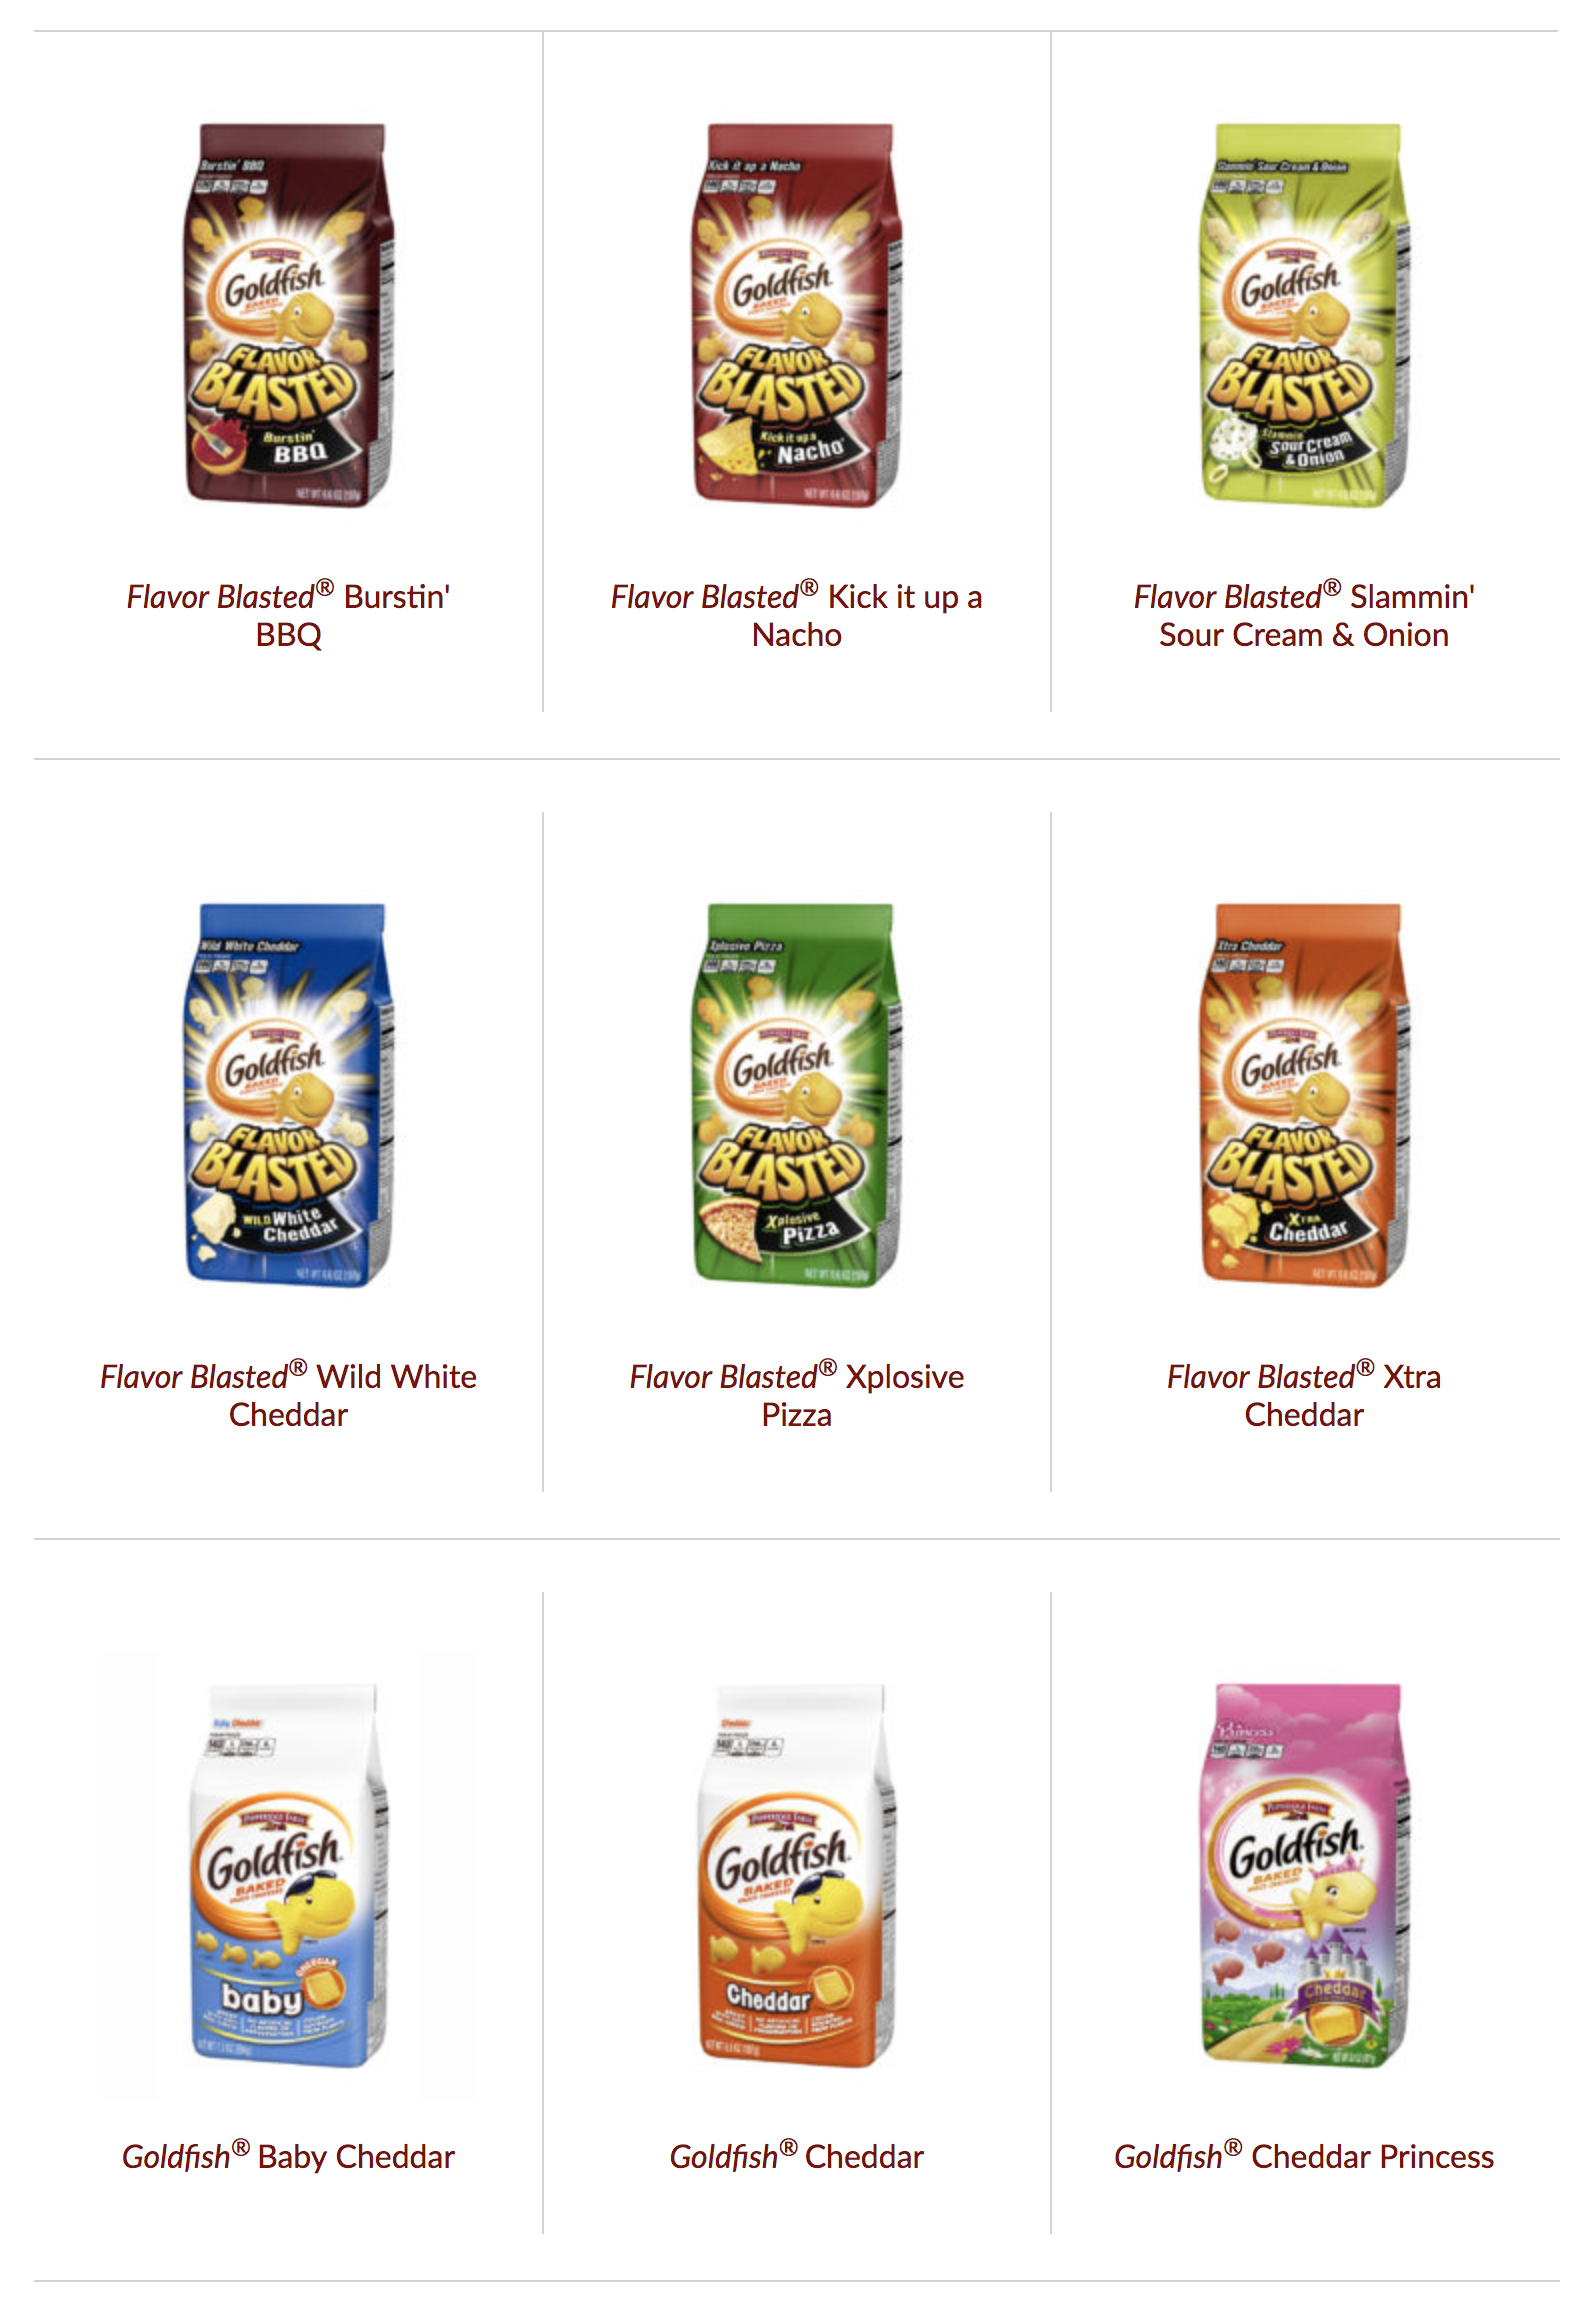 Are Goldfish crackers products gluten free?